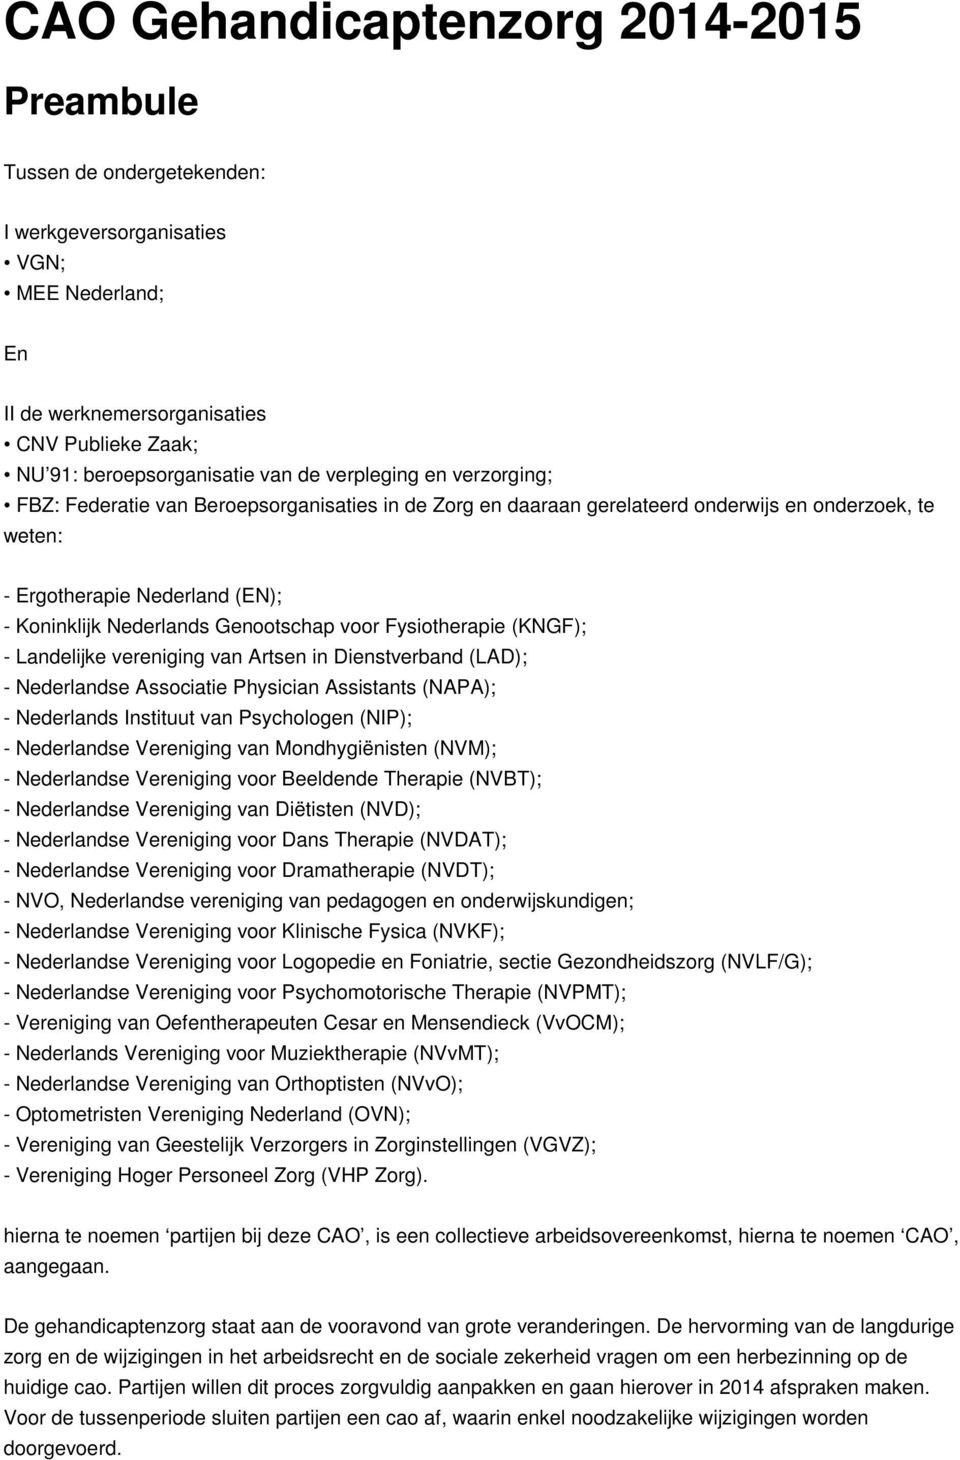 voor Fysiotherapie (KNGF); - Landelijke vereniging van Artsen in Dienstverband (LAD); - Nederlandse Associatie Physician Assistants (NAPA); - Nederlands Instituut van Psychologen (NIP); - Nederlandse